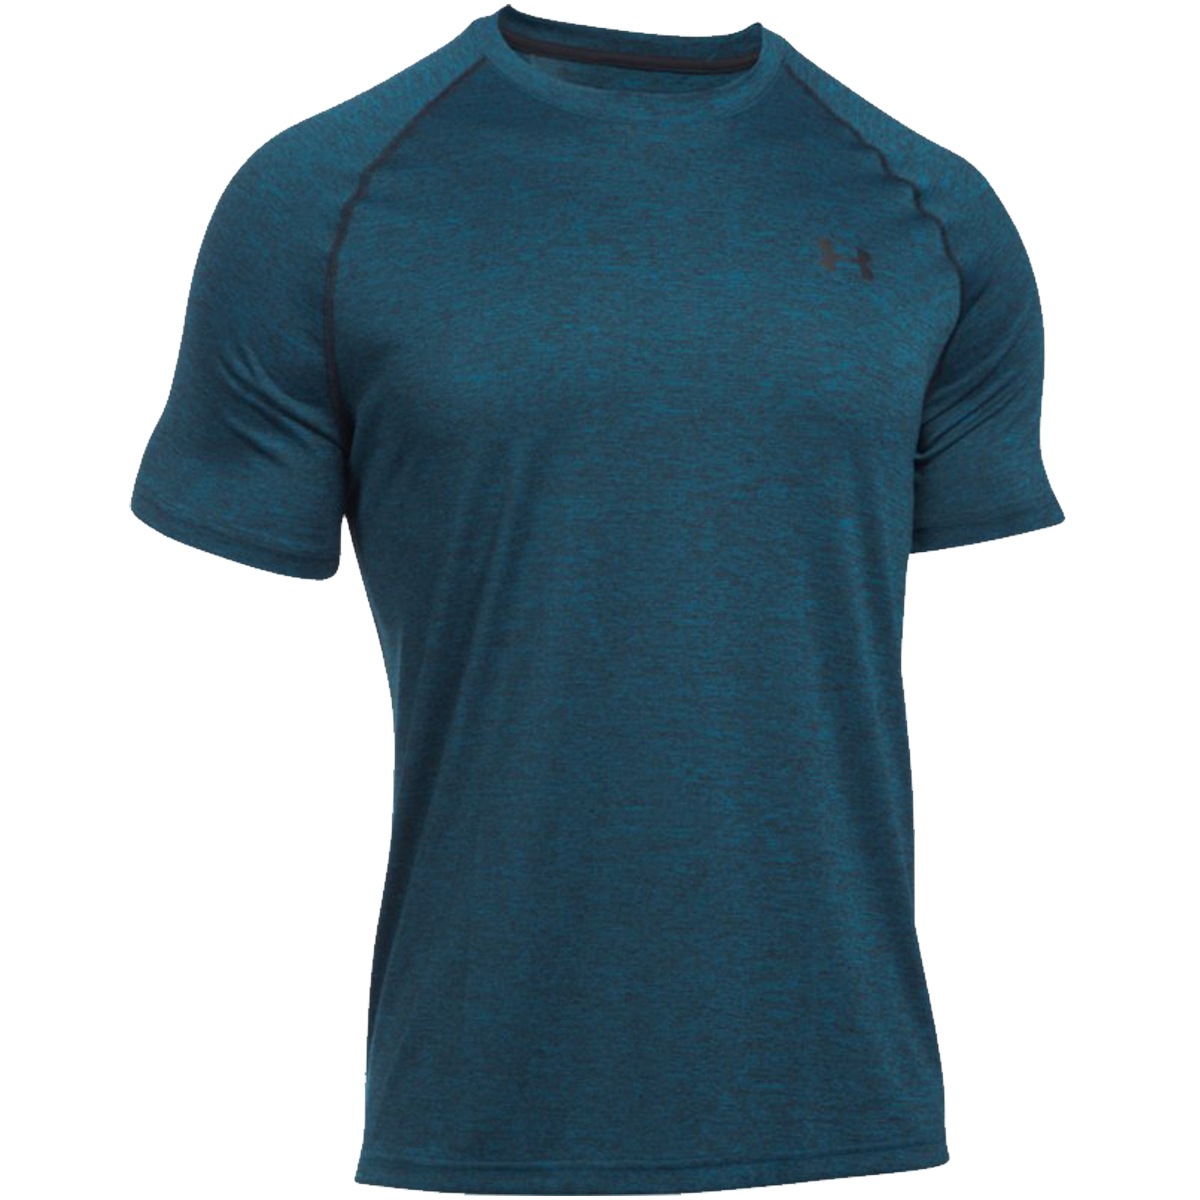 ae61dbb6 Under Armour Mens UA Tech SS T Shirt HeatGear Training 31% OFF RRP ...